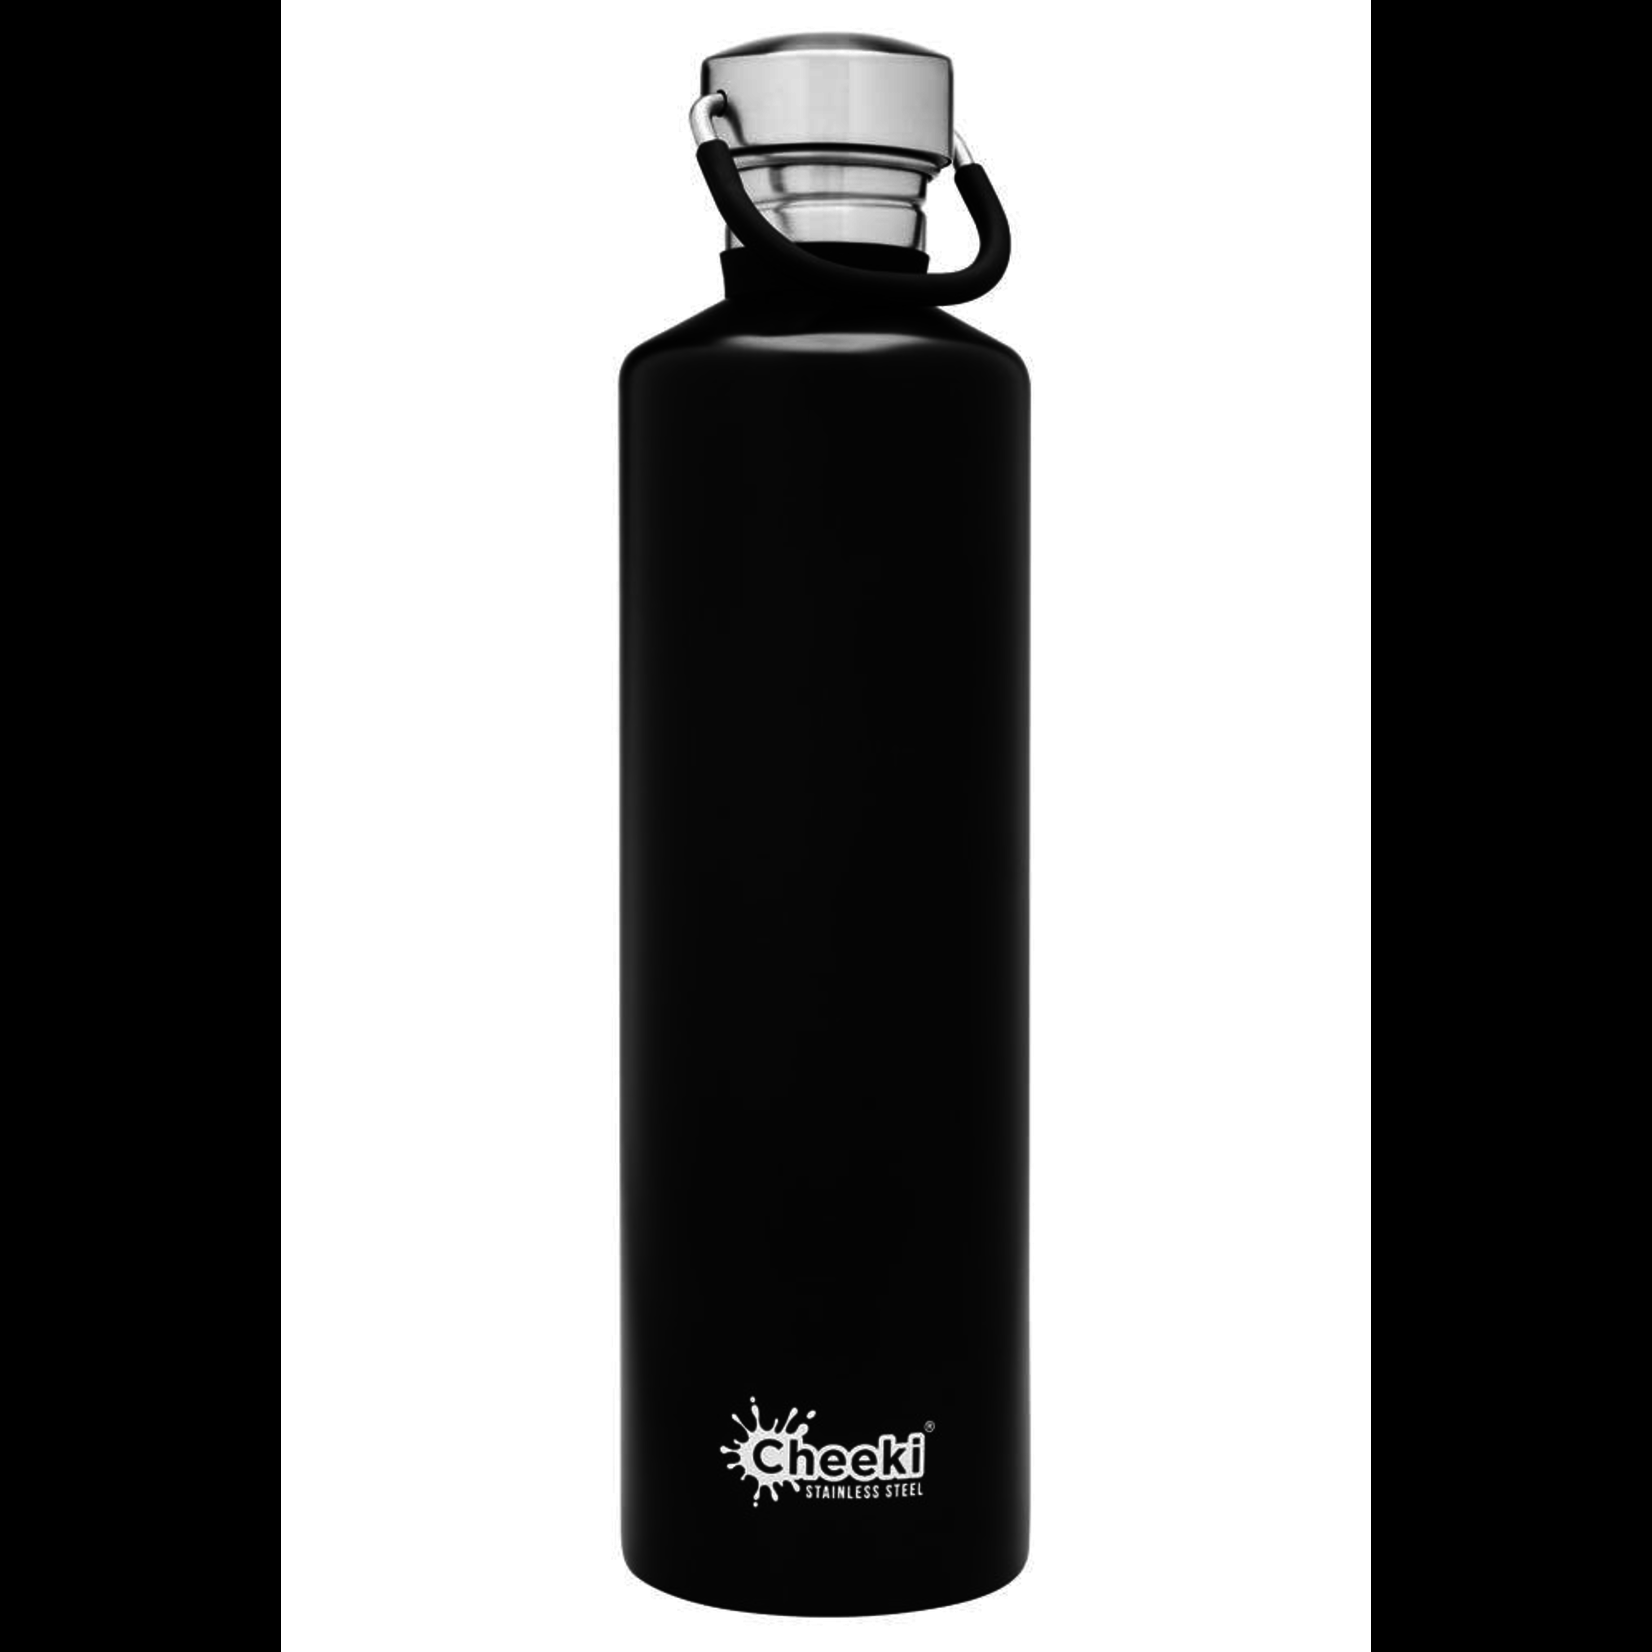 Cheeki Cheeki 1 Litre Single Wall Bottle